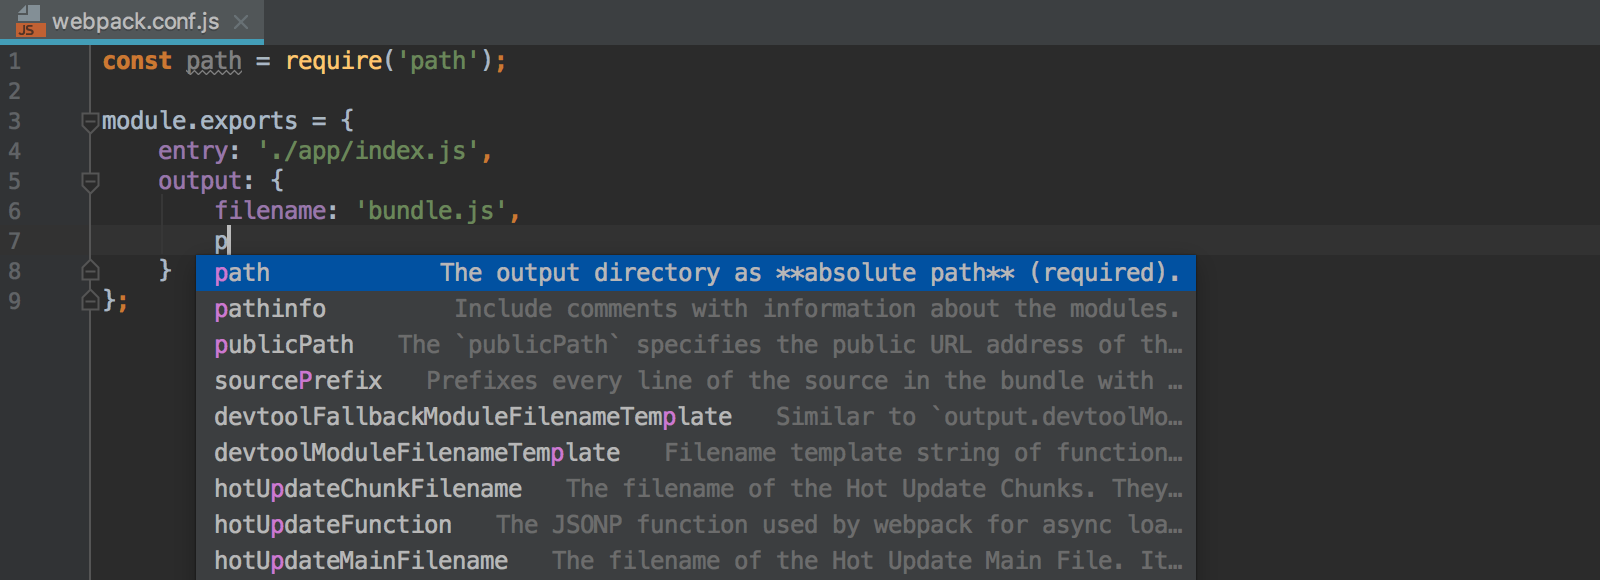 ws_webpack-conf.png